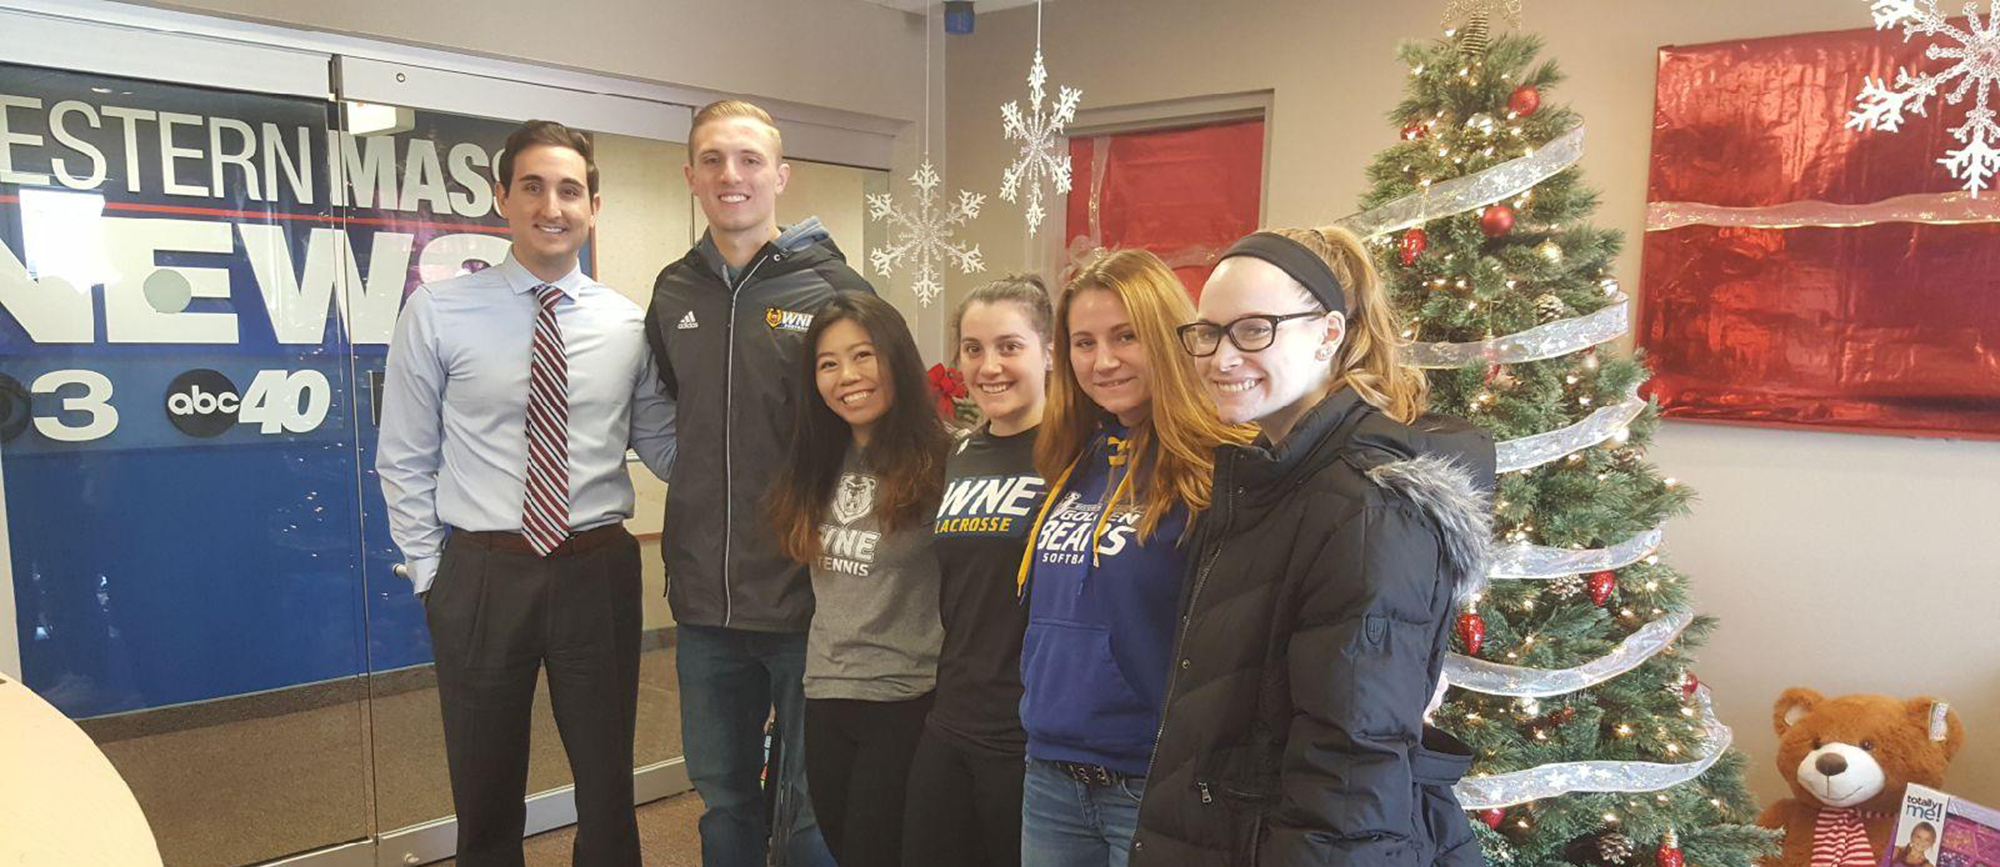 Members of Western New England SAAC Featured on Western Mass News